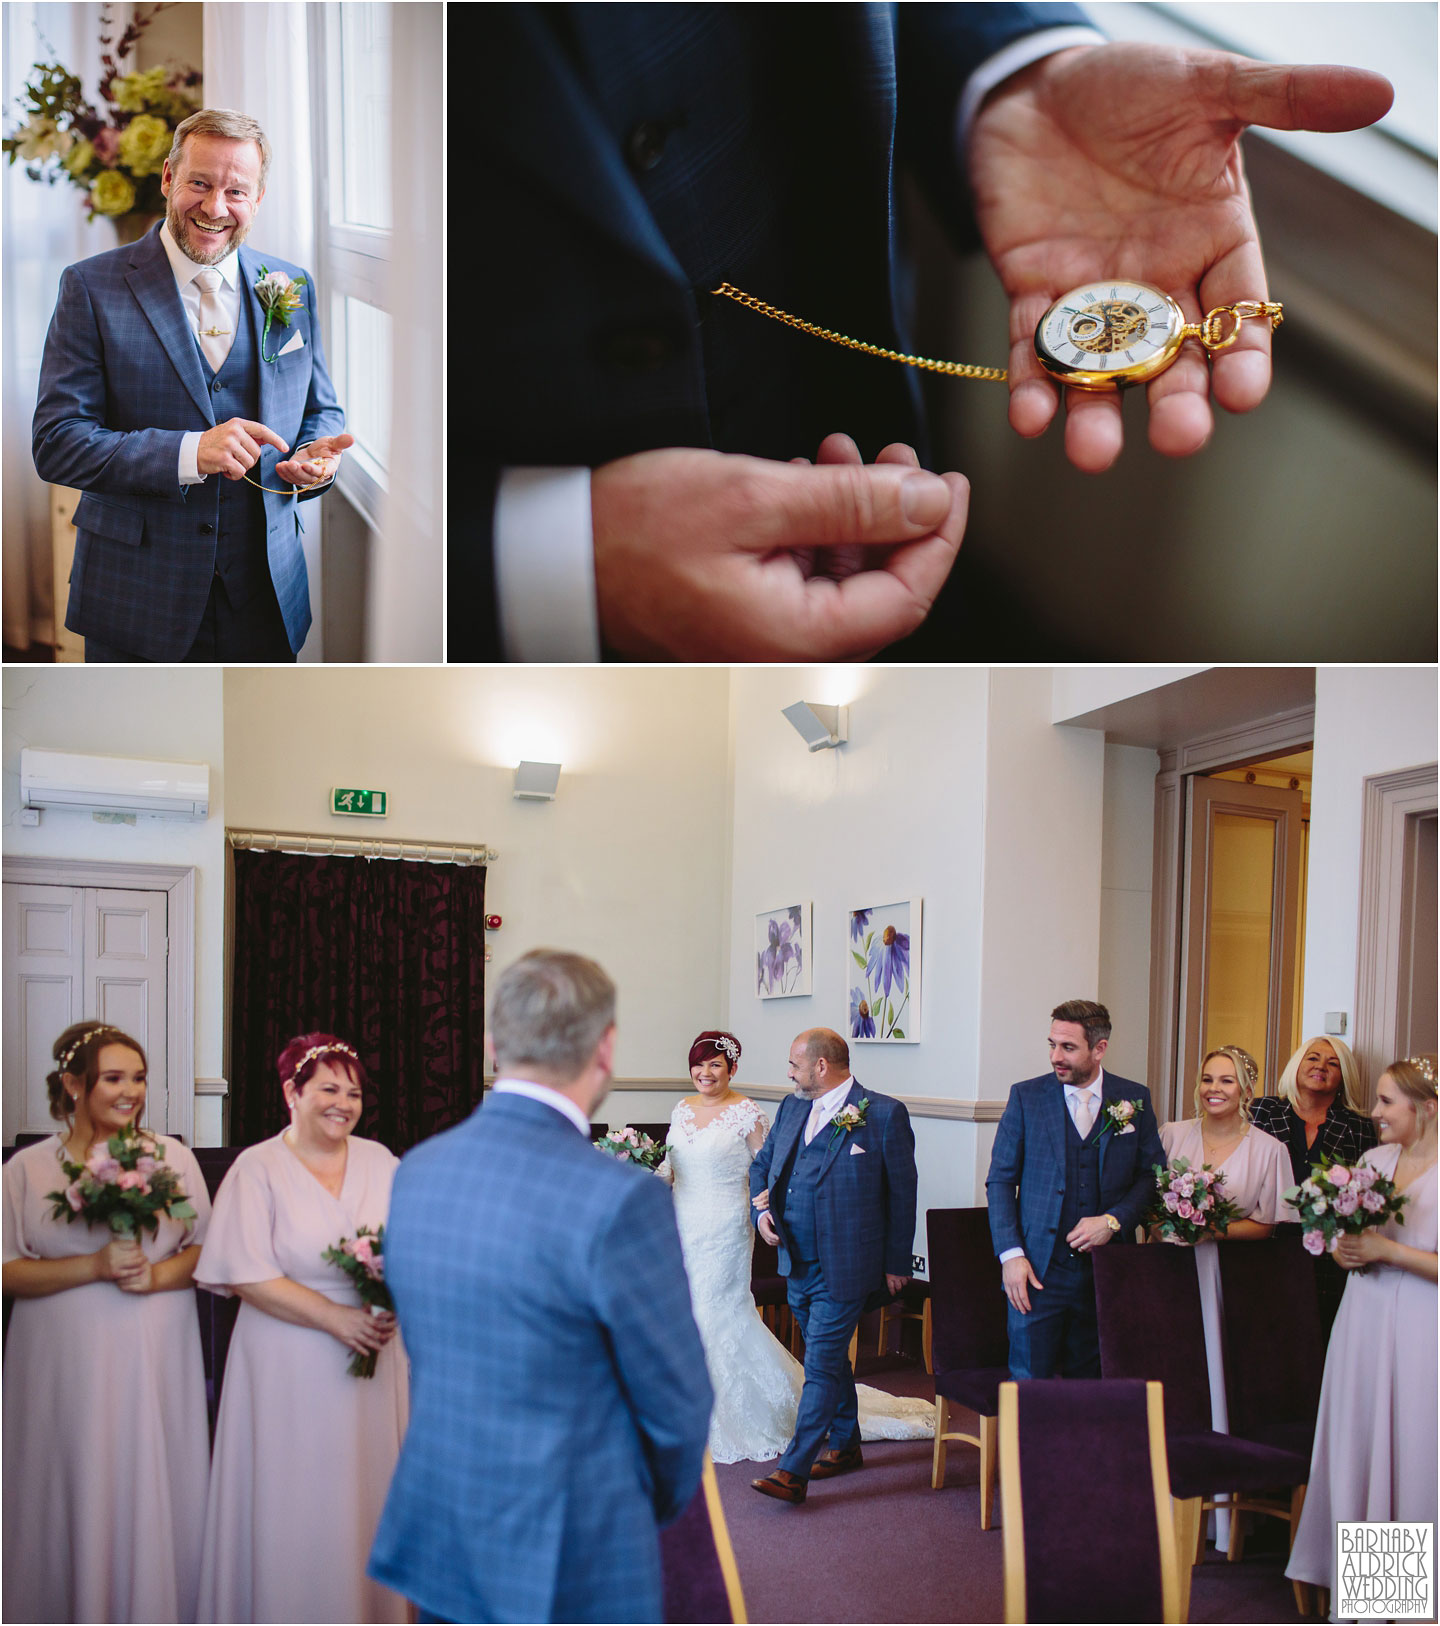 tiny Civil Ceremony at Leeds Town Hall, Leeds city centre autumn wedding photos, Peaky blinders wedding pocket watch